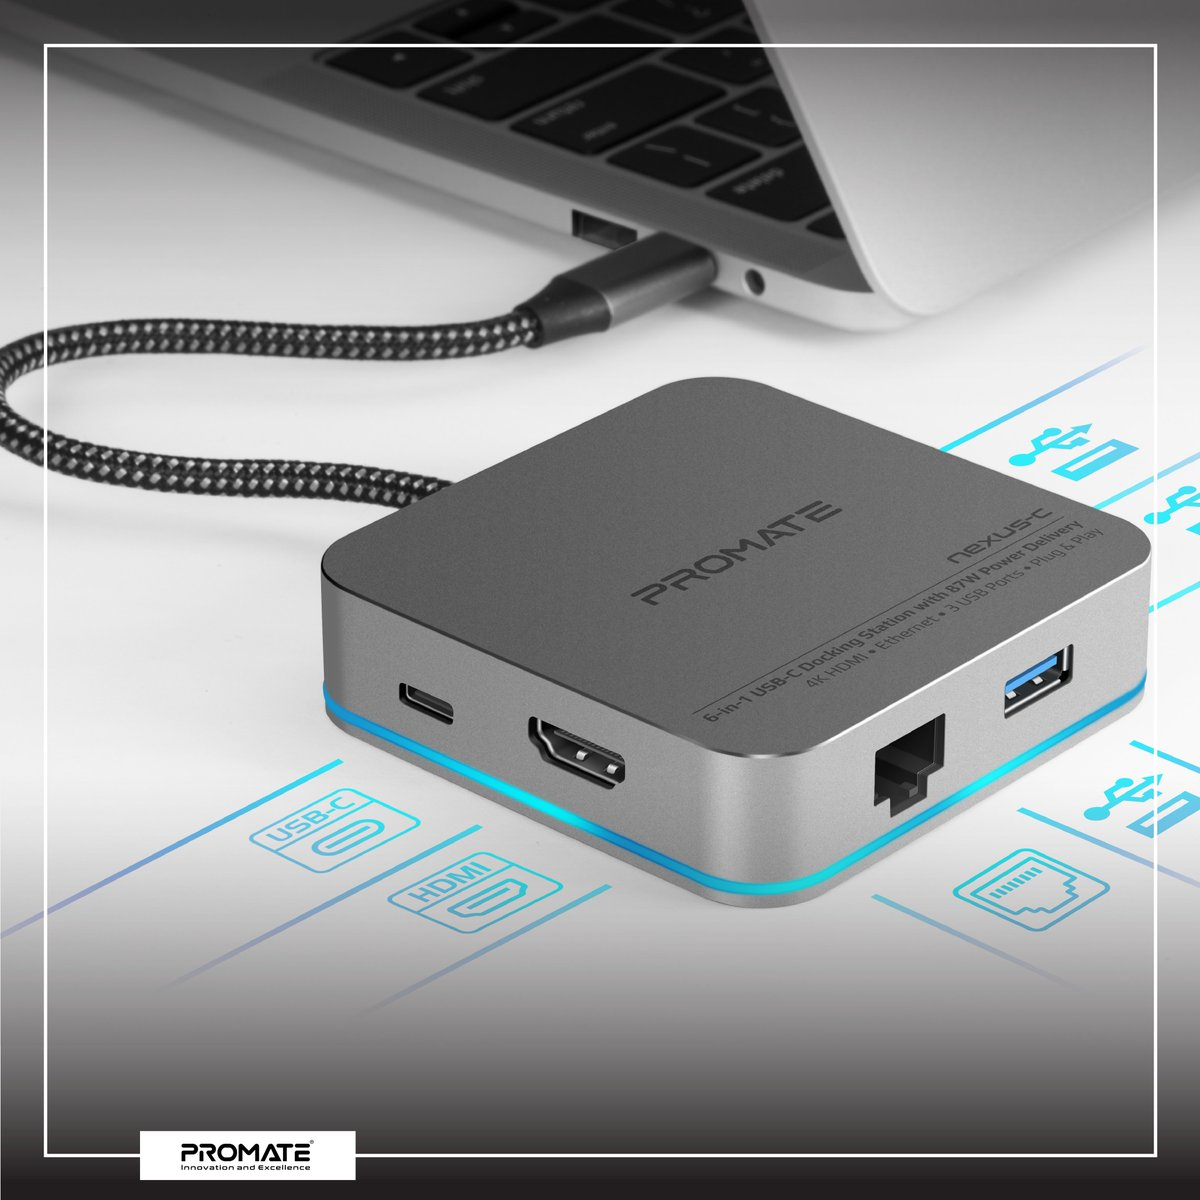 Promate Nexus-C: 6-in-1 USB-C Docking Station with 87W Power Delivery • 4K HDMI • Ethernet • 3 USB Ports • Plug & Play.   #Promate #Power_Delivery #MacBook #USBC #USB_Hub #laptop #iPadPro https://t.co/3U8c9hHWlK